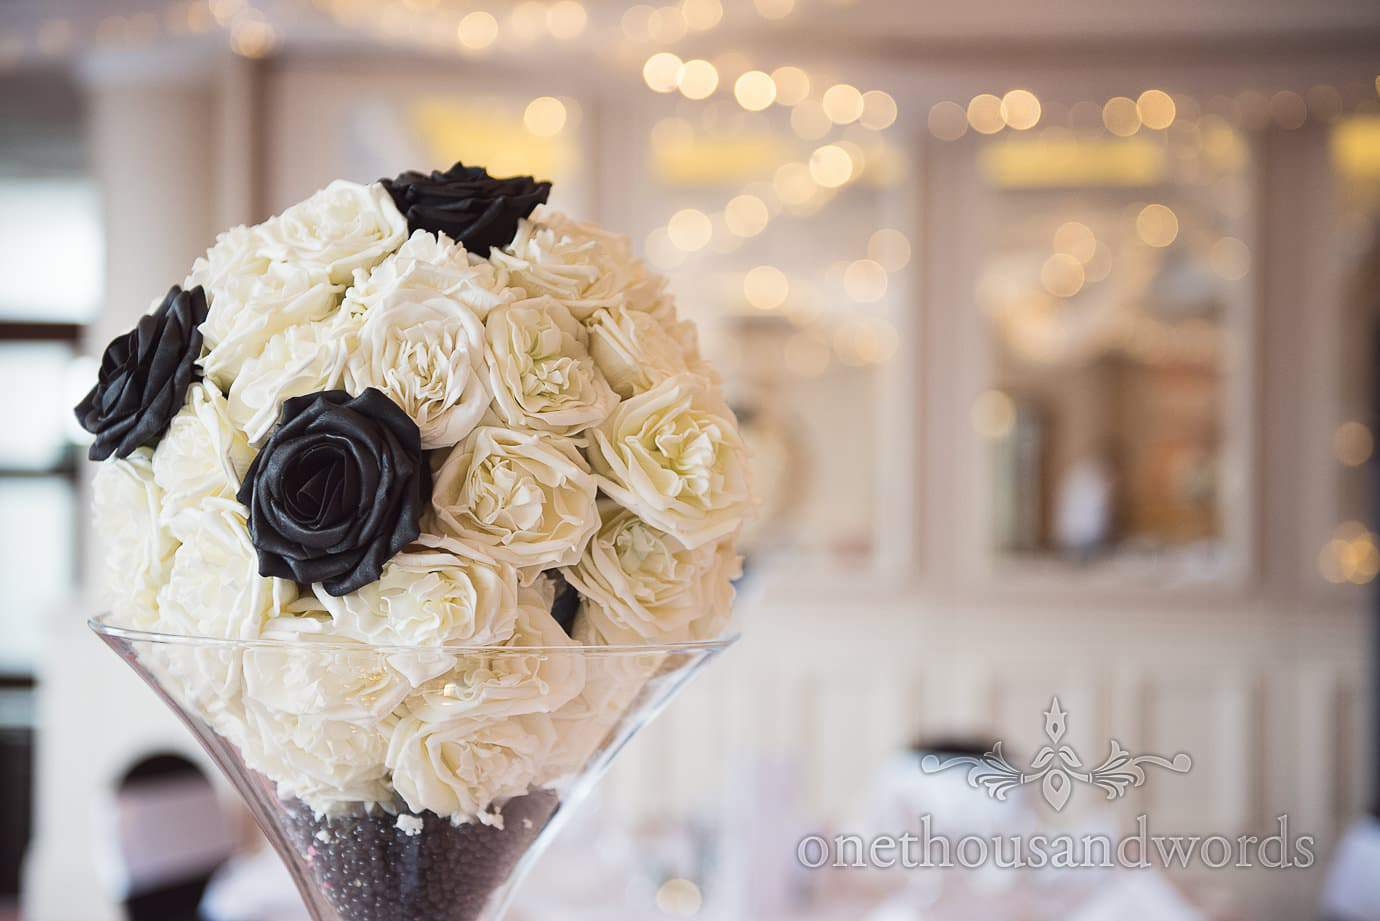 Black and white flower table spray in Martini vase at rock and roll wedding